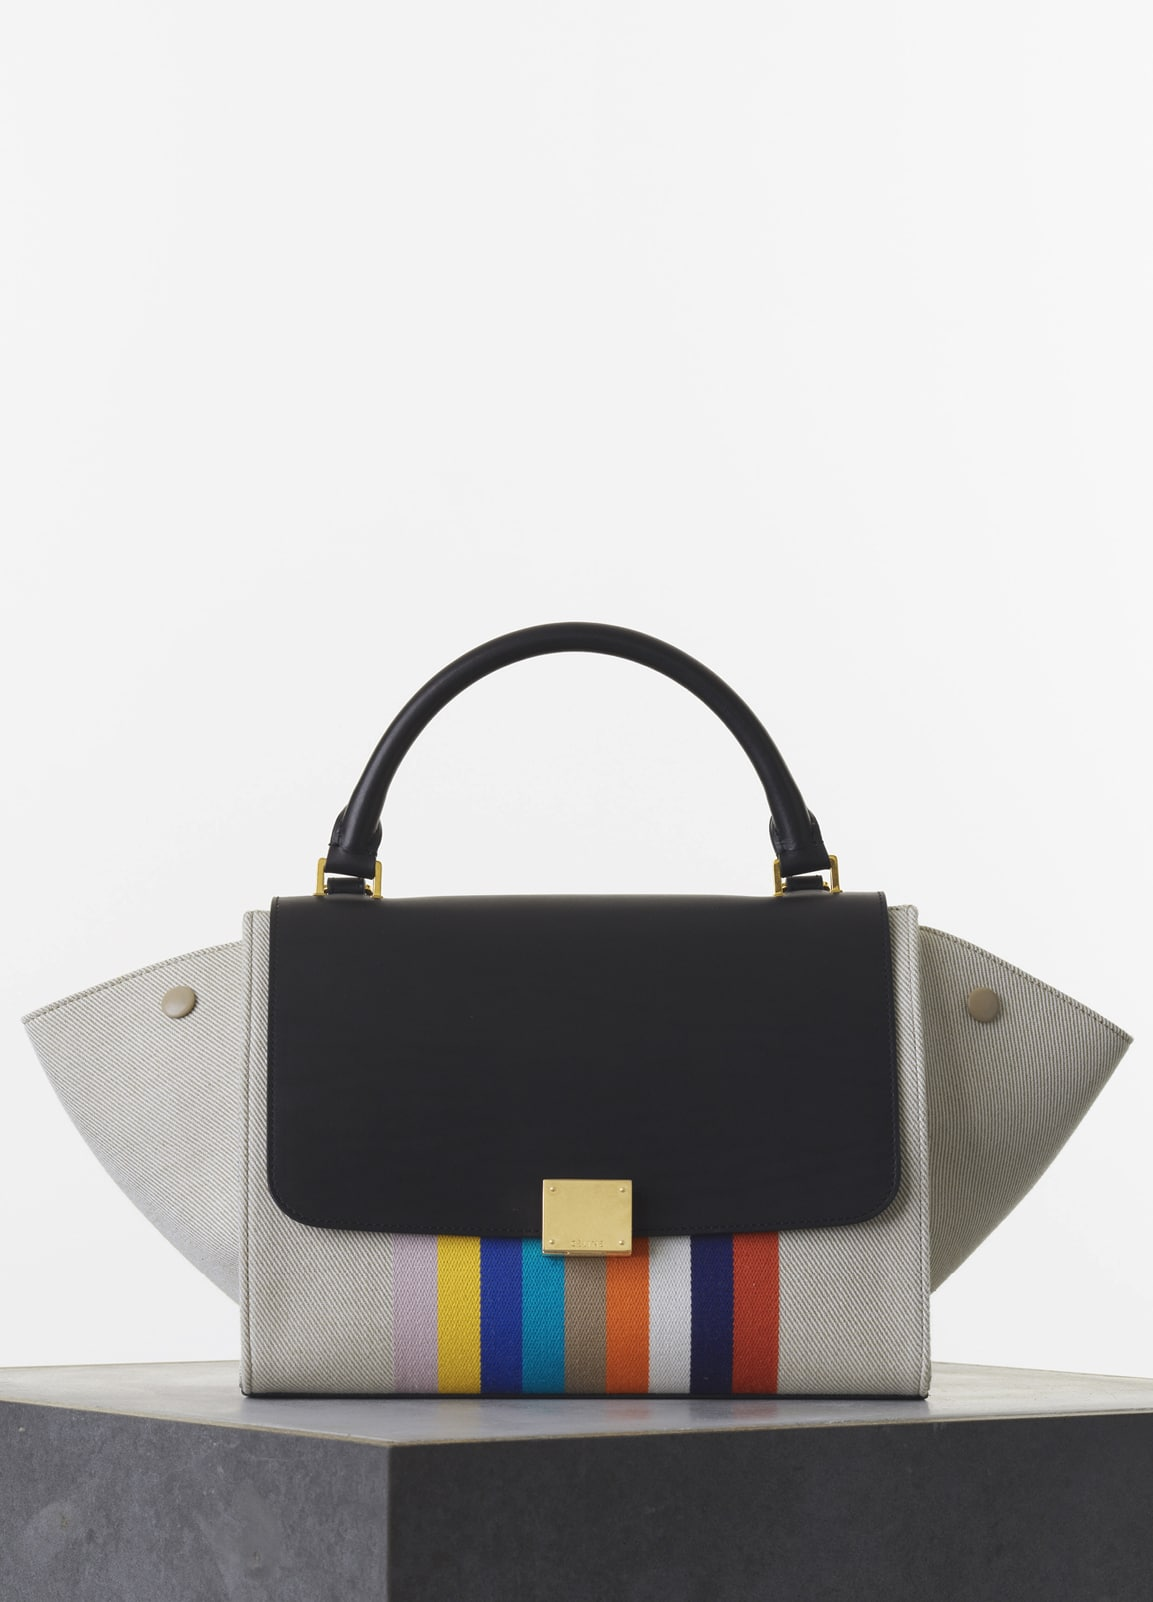 celine pouch clutch - MICRO LUGGAGE HANDBAG IN MULTICOLOUR TEXTILE